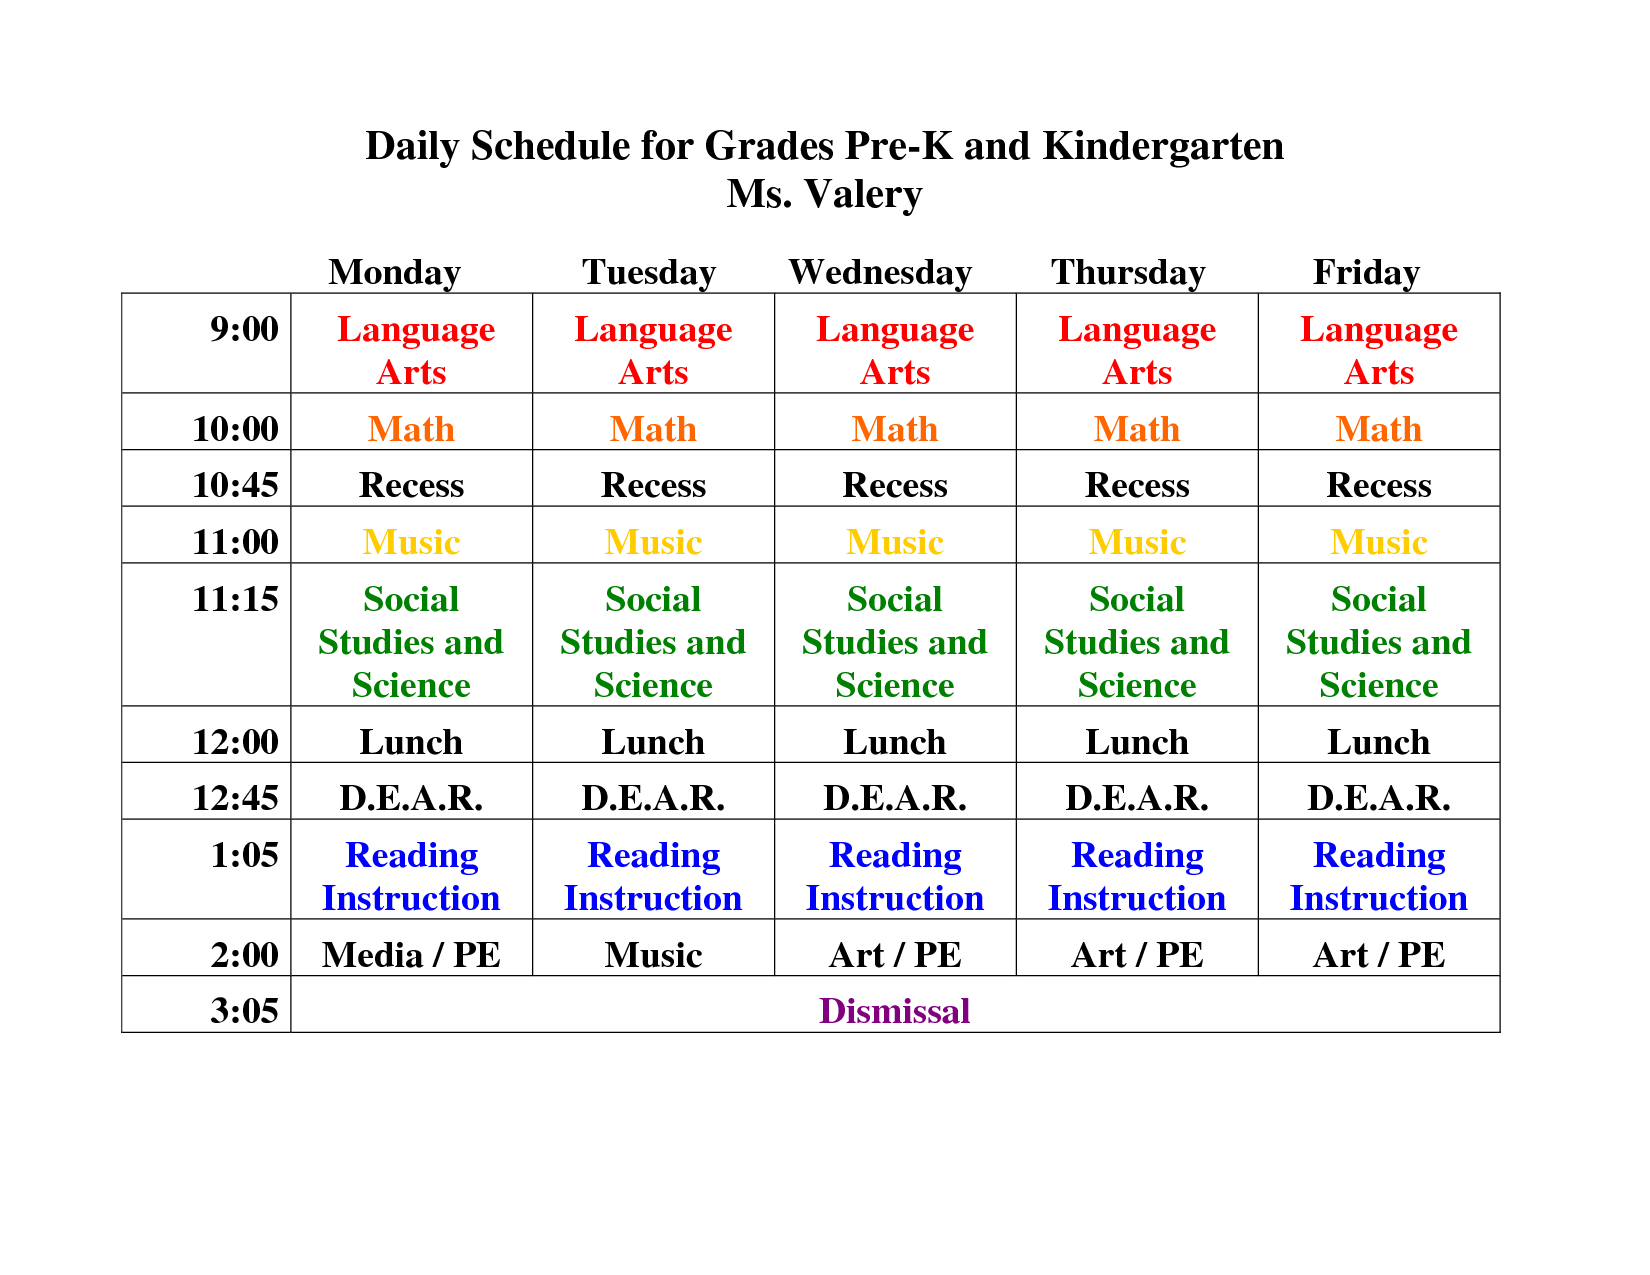 KindergartenDailyScheduleTemplate  Daily Schedule For Grades